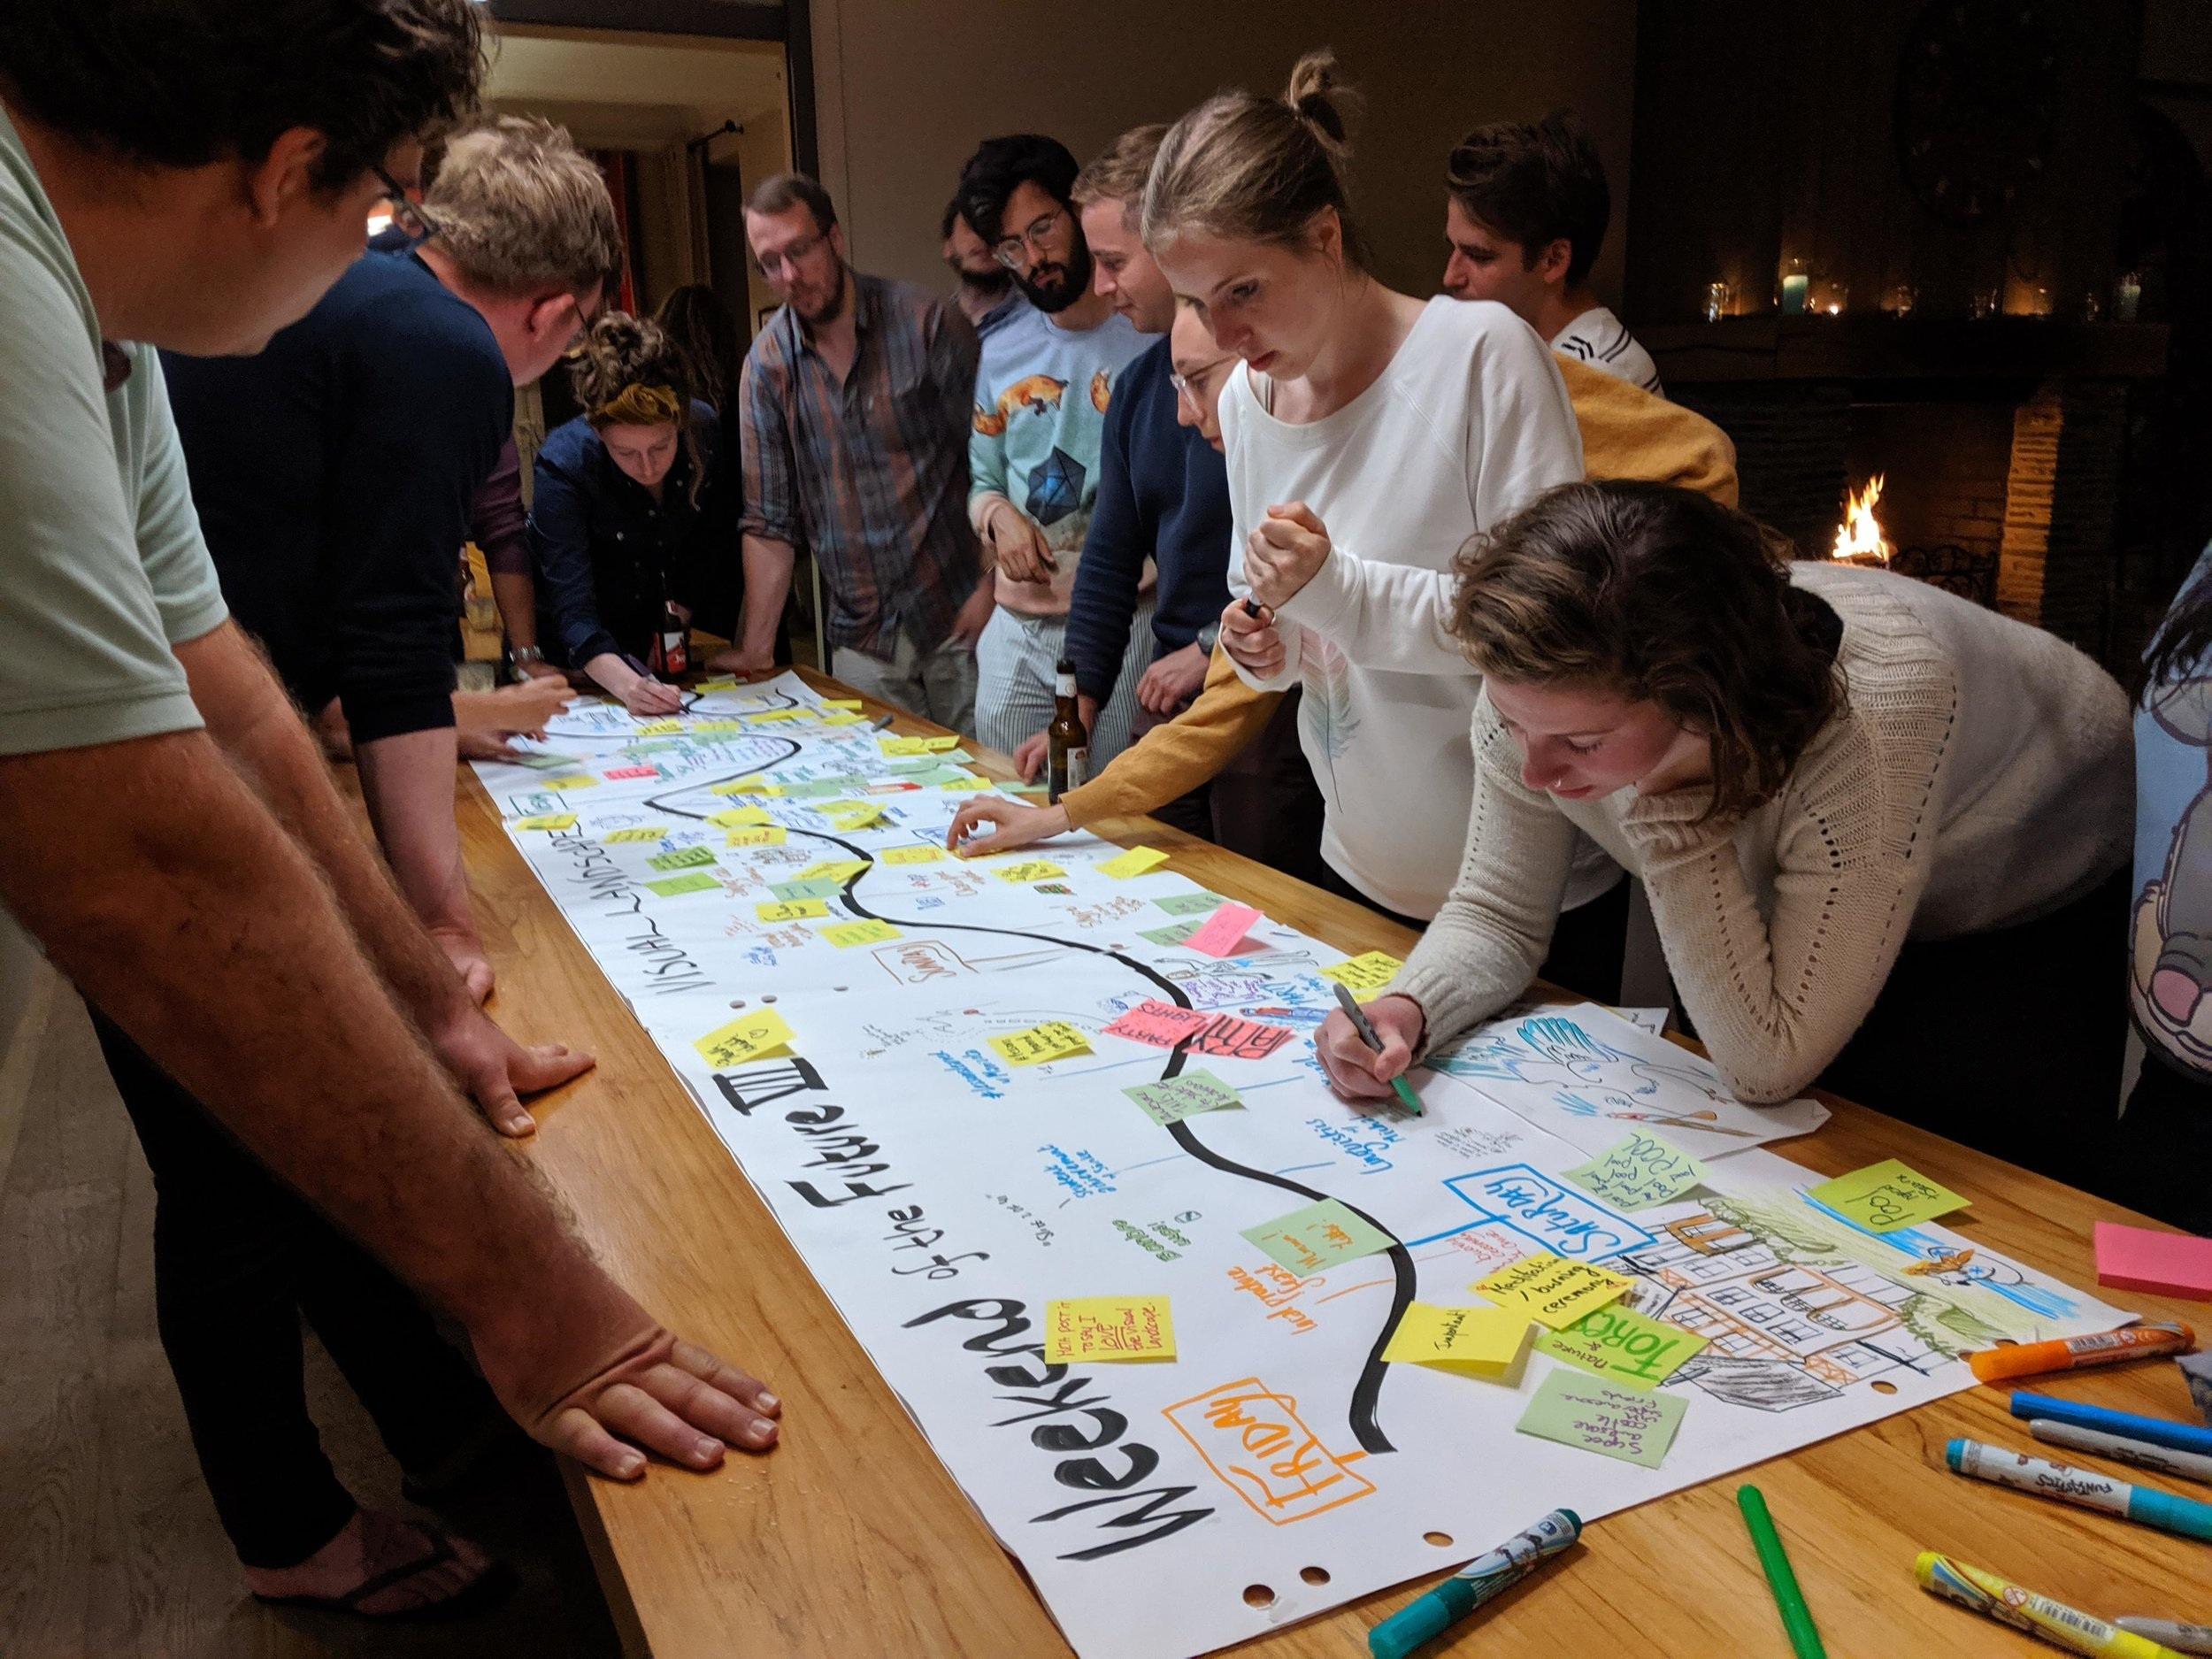 2019 - Visual facilitation workshop at the Weekend of the Future, Targnon BE